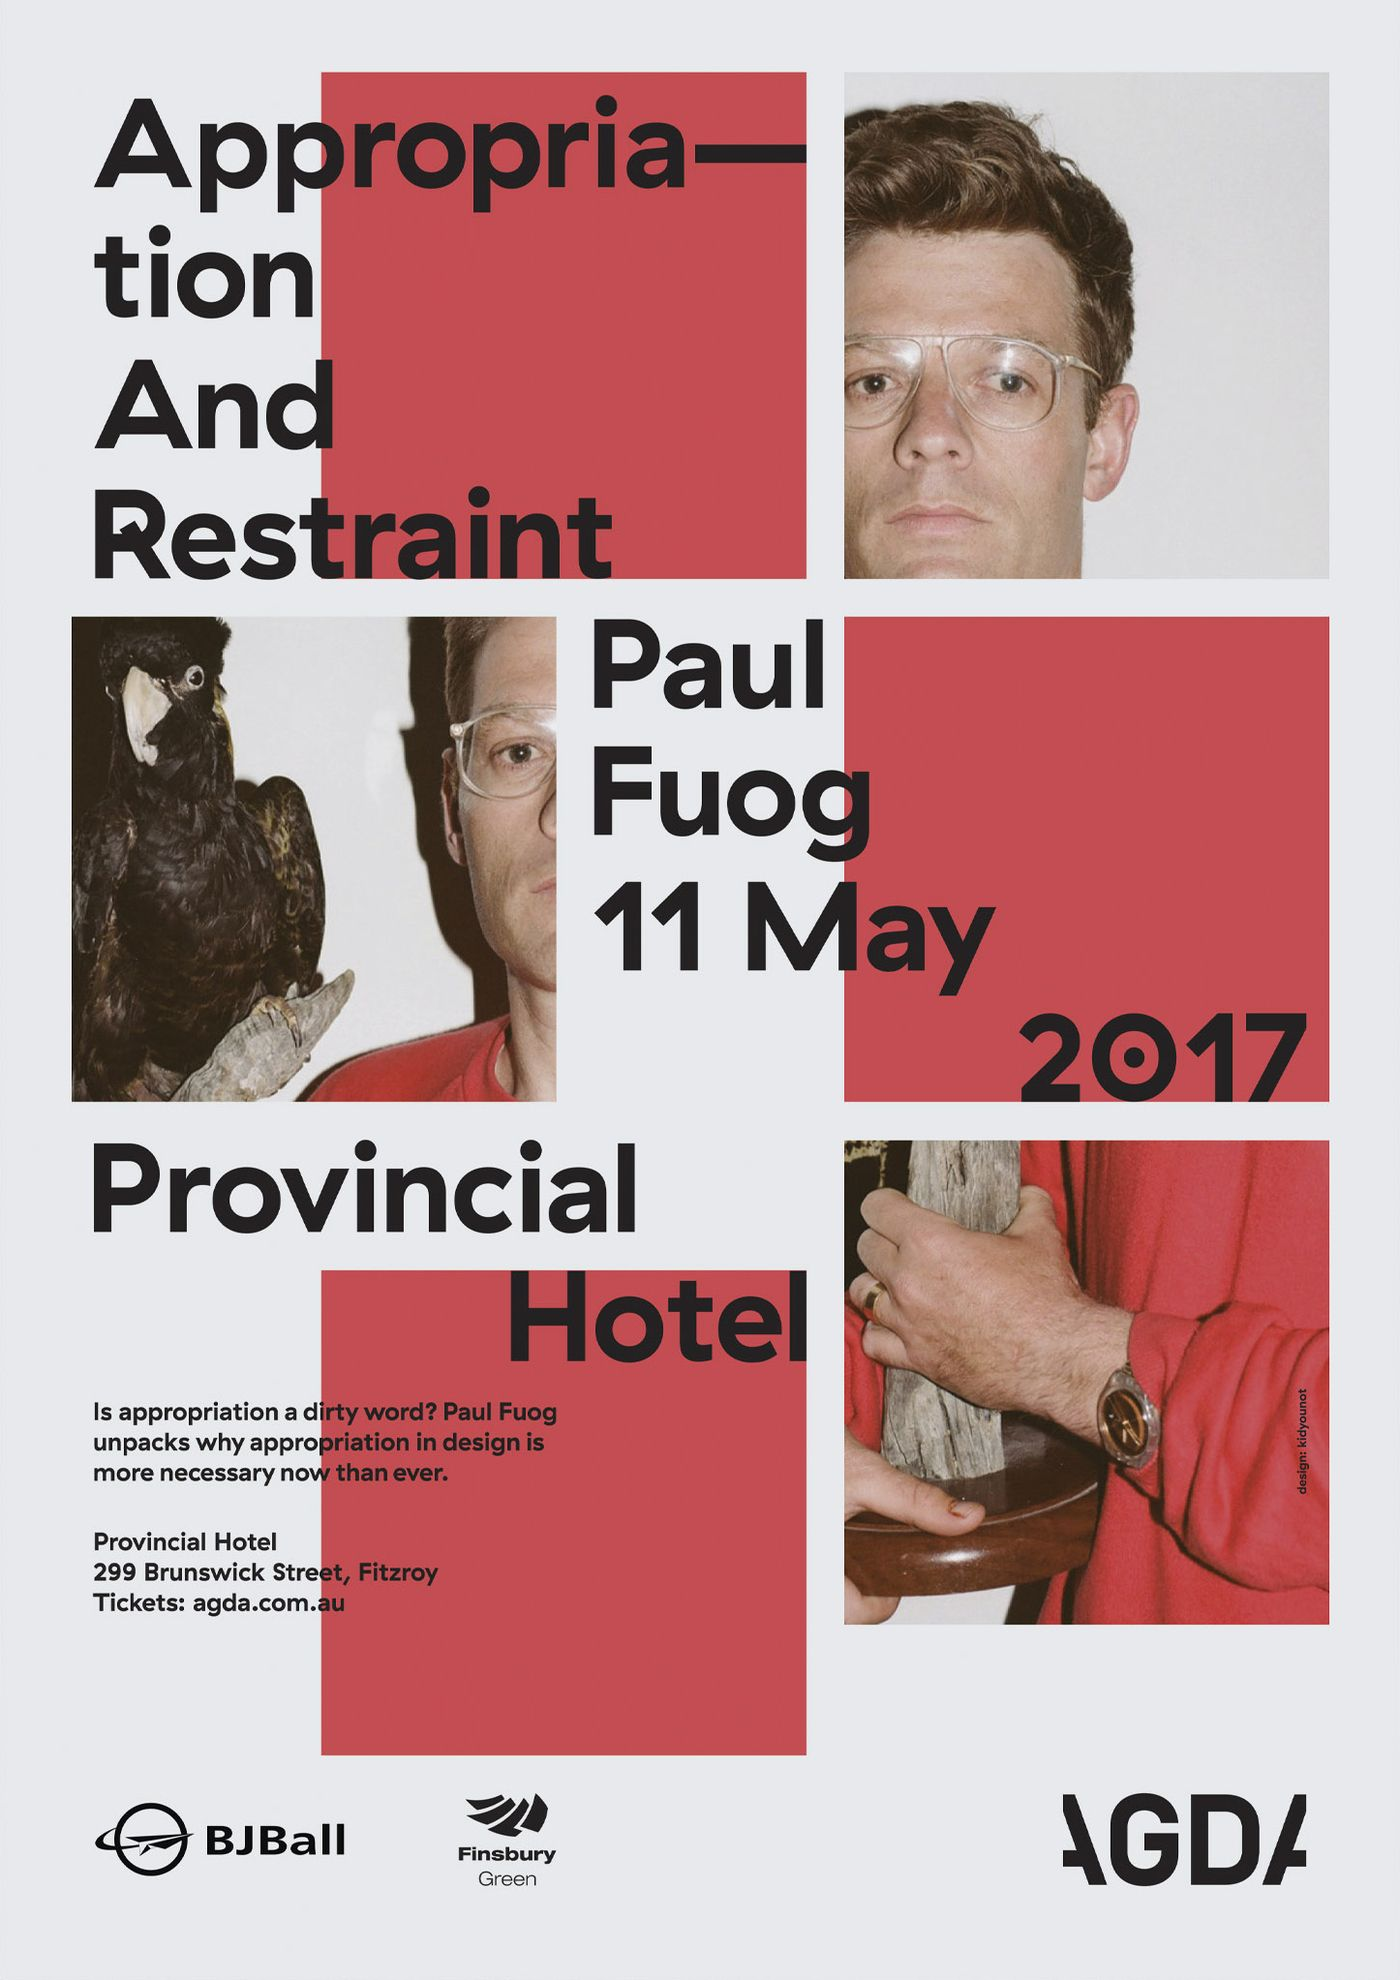 """Appropriation And Restraint"" lecture poster"